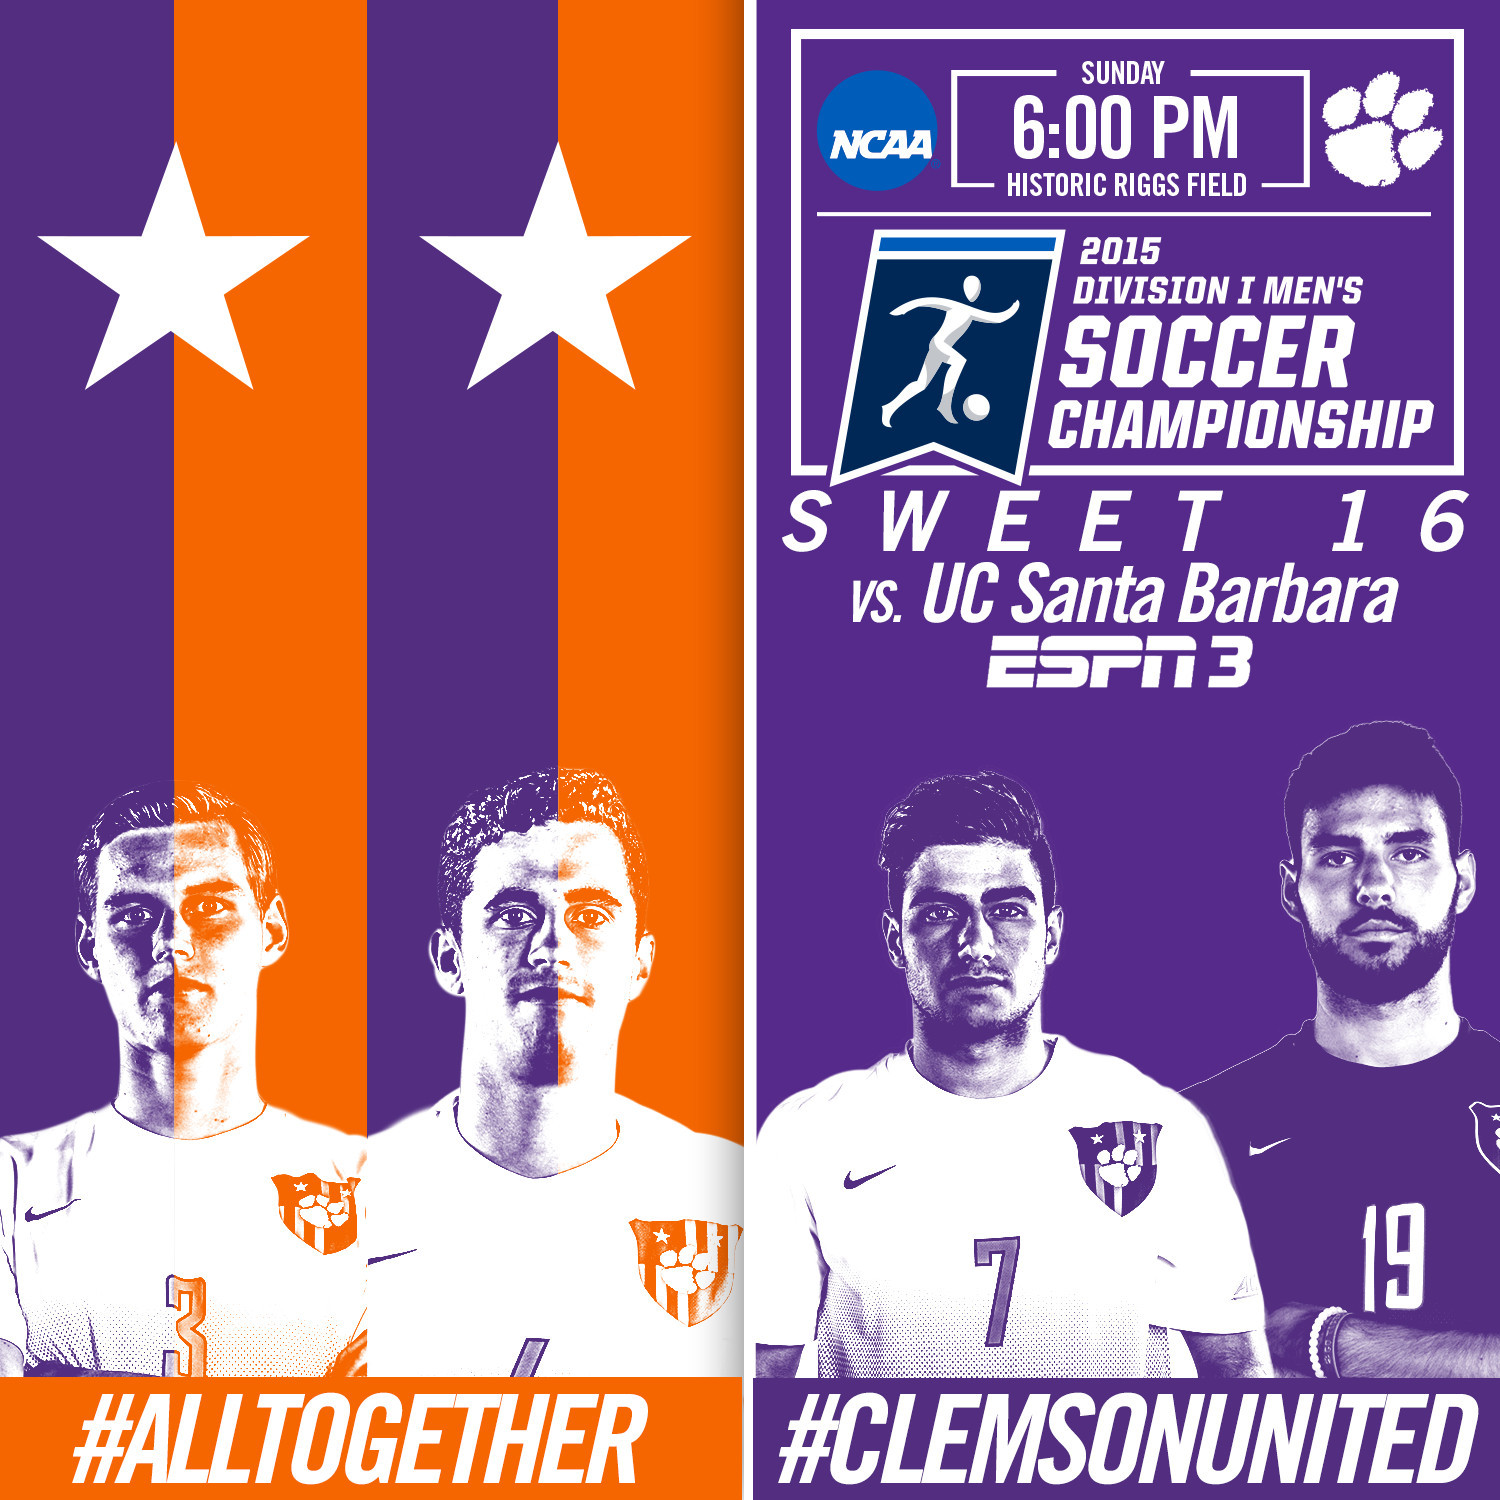 No. 2 Seed Tigers Host No. 15 Seed UCSB in NCAA Sweet 16 Sunday